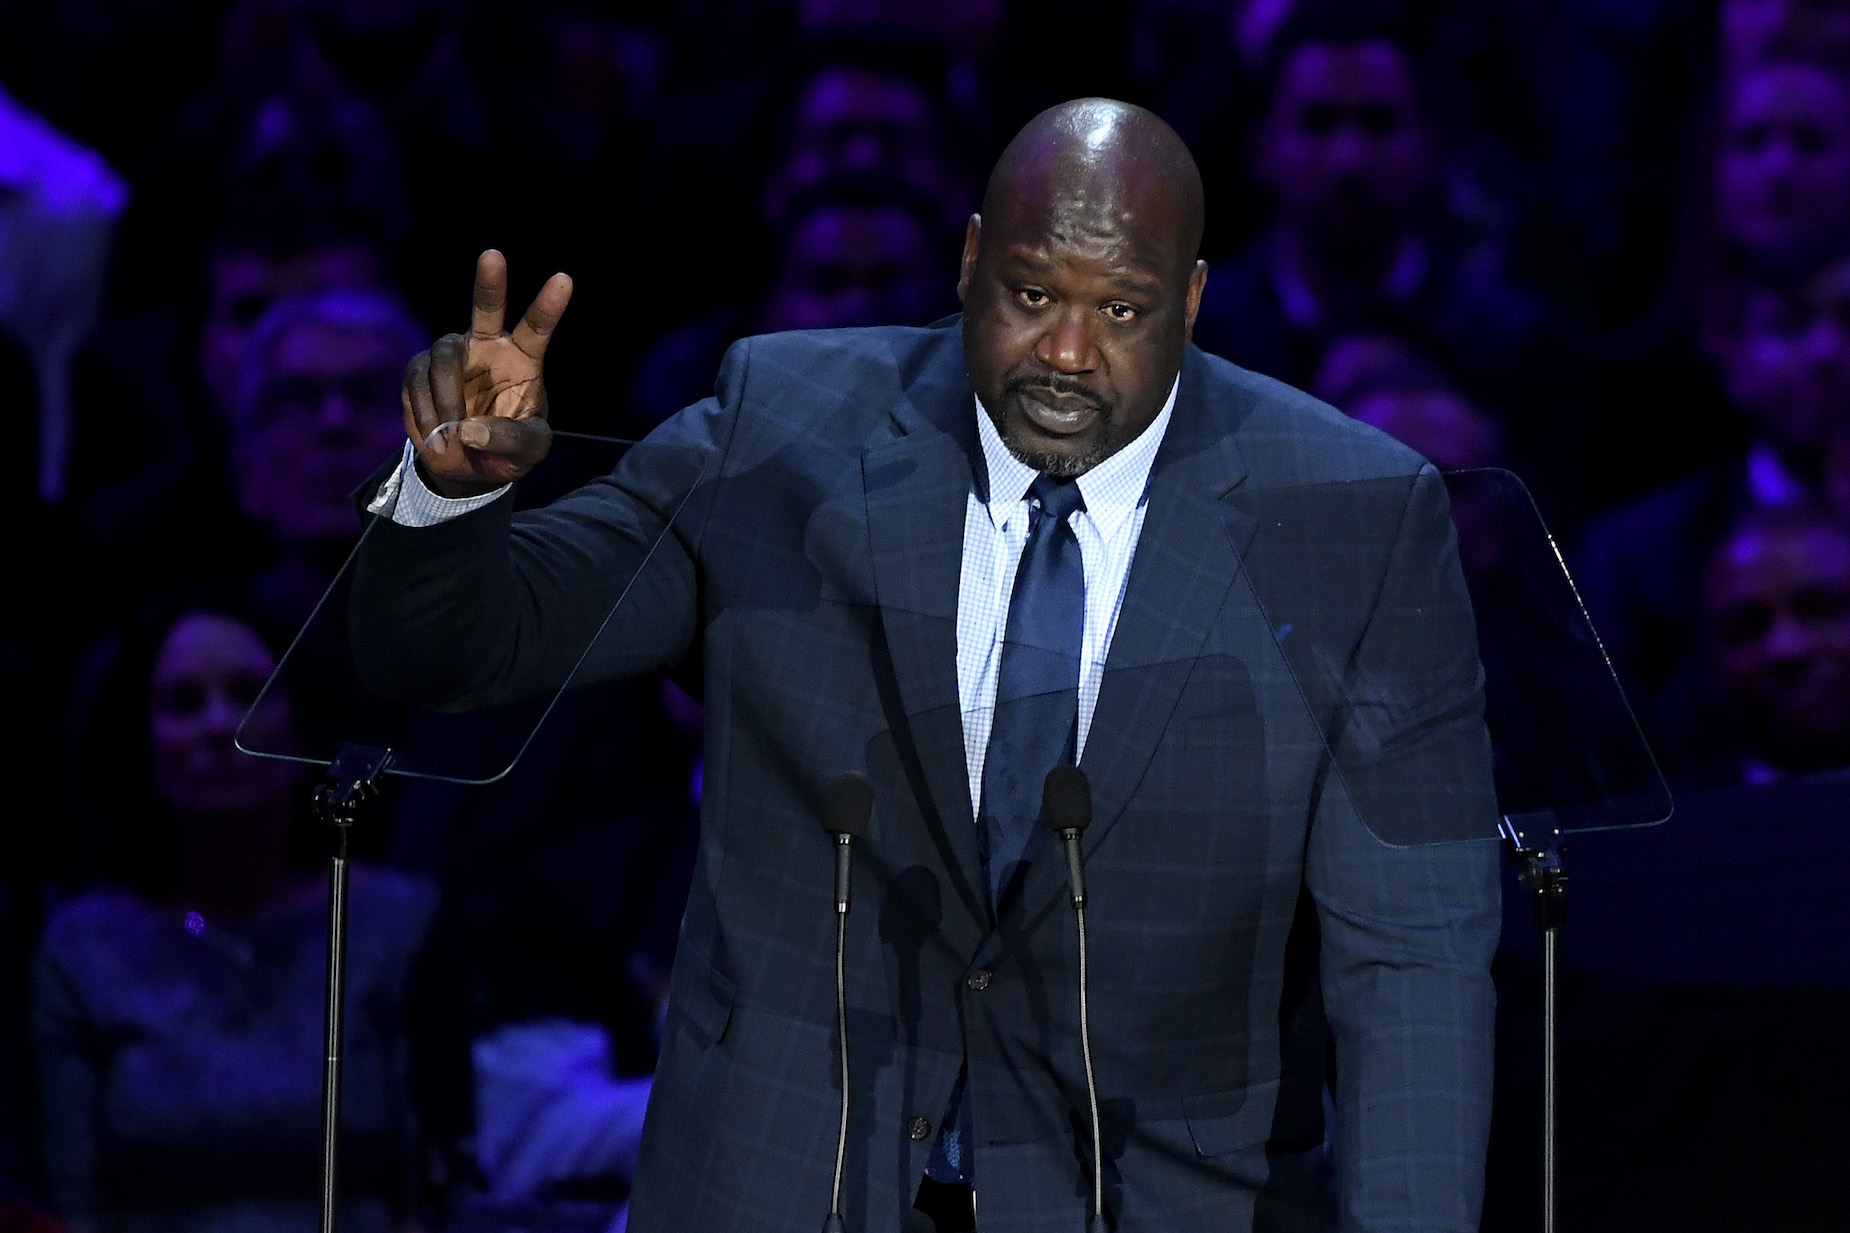 While 2020 was a tough year for Shaquille O'Neal, he still learned an important lesson.